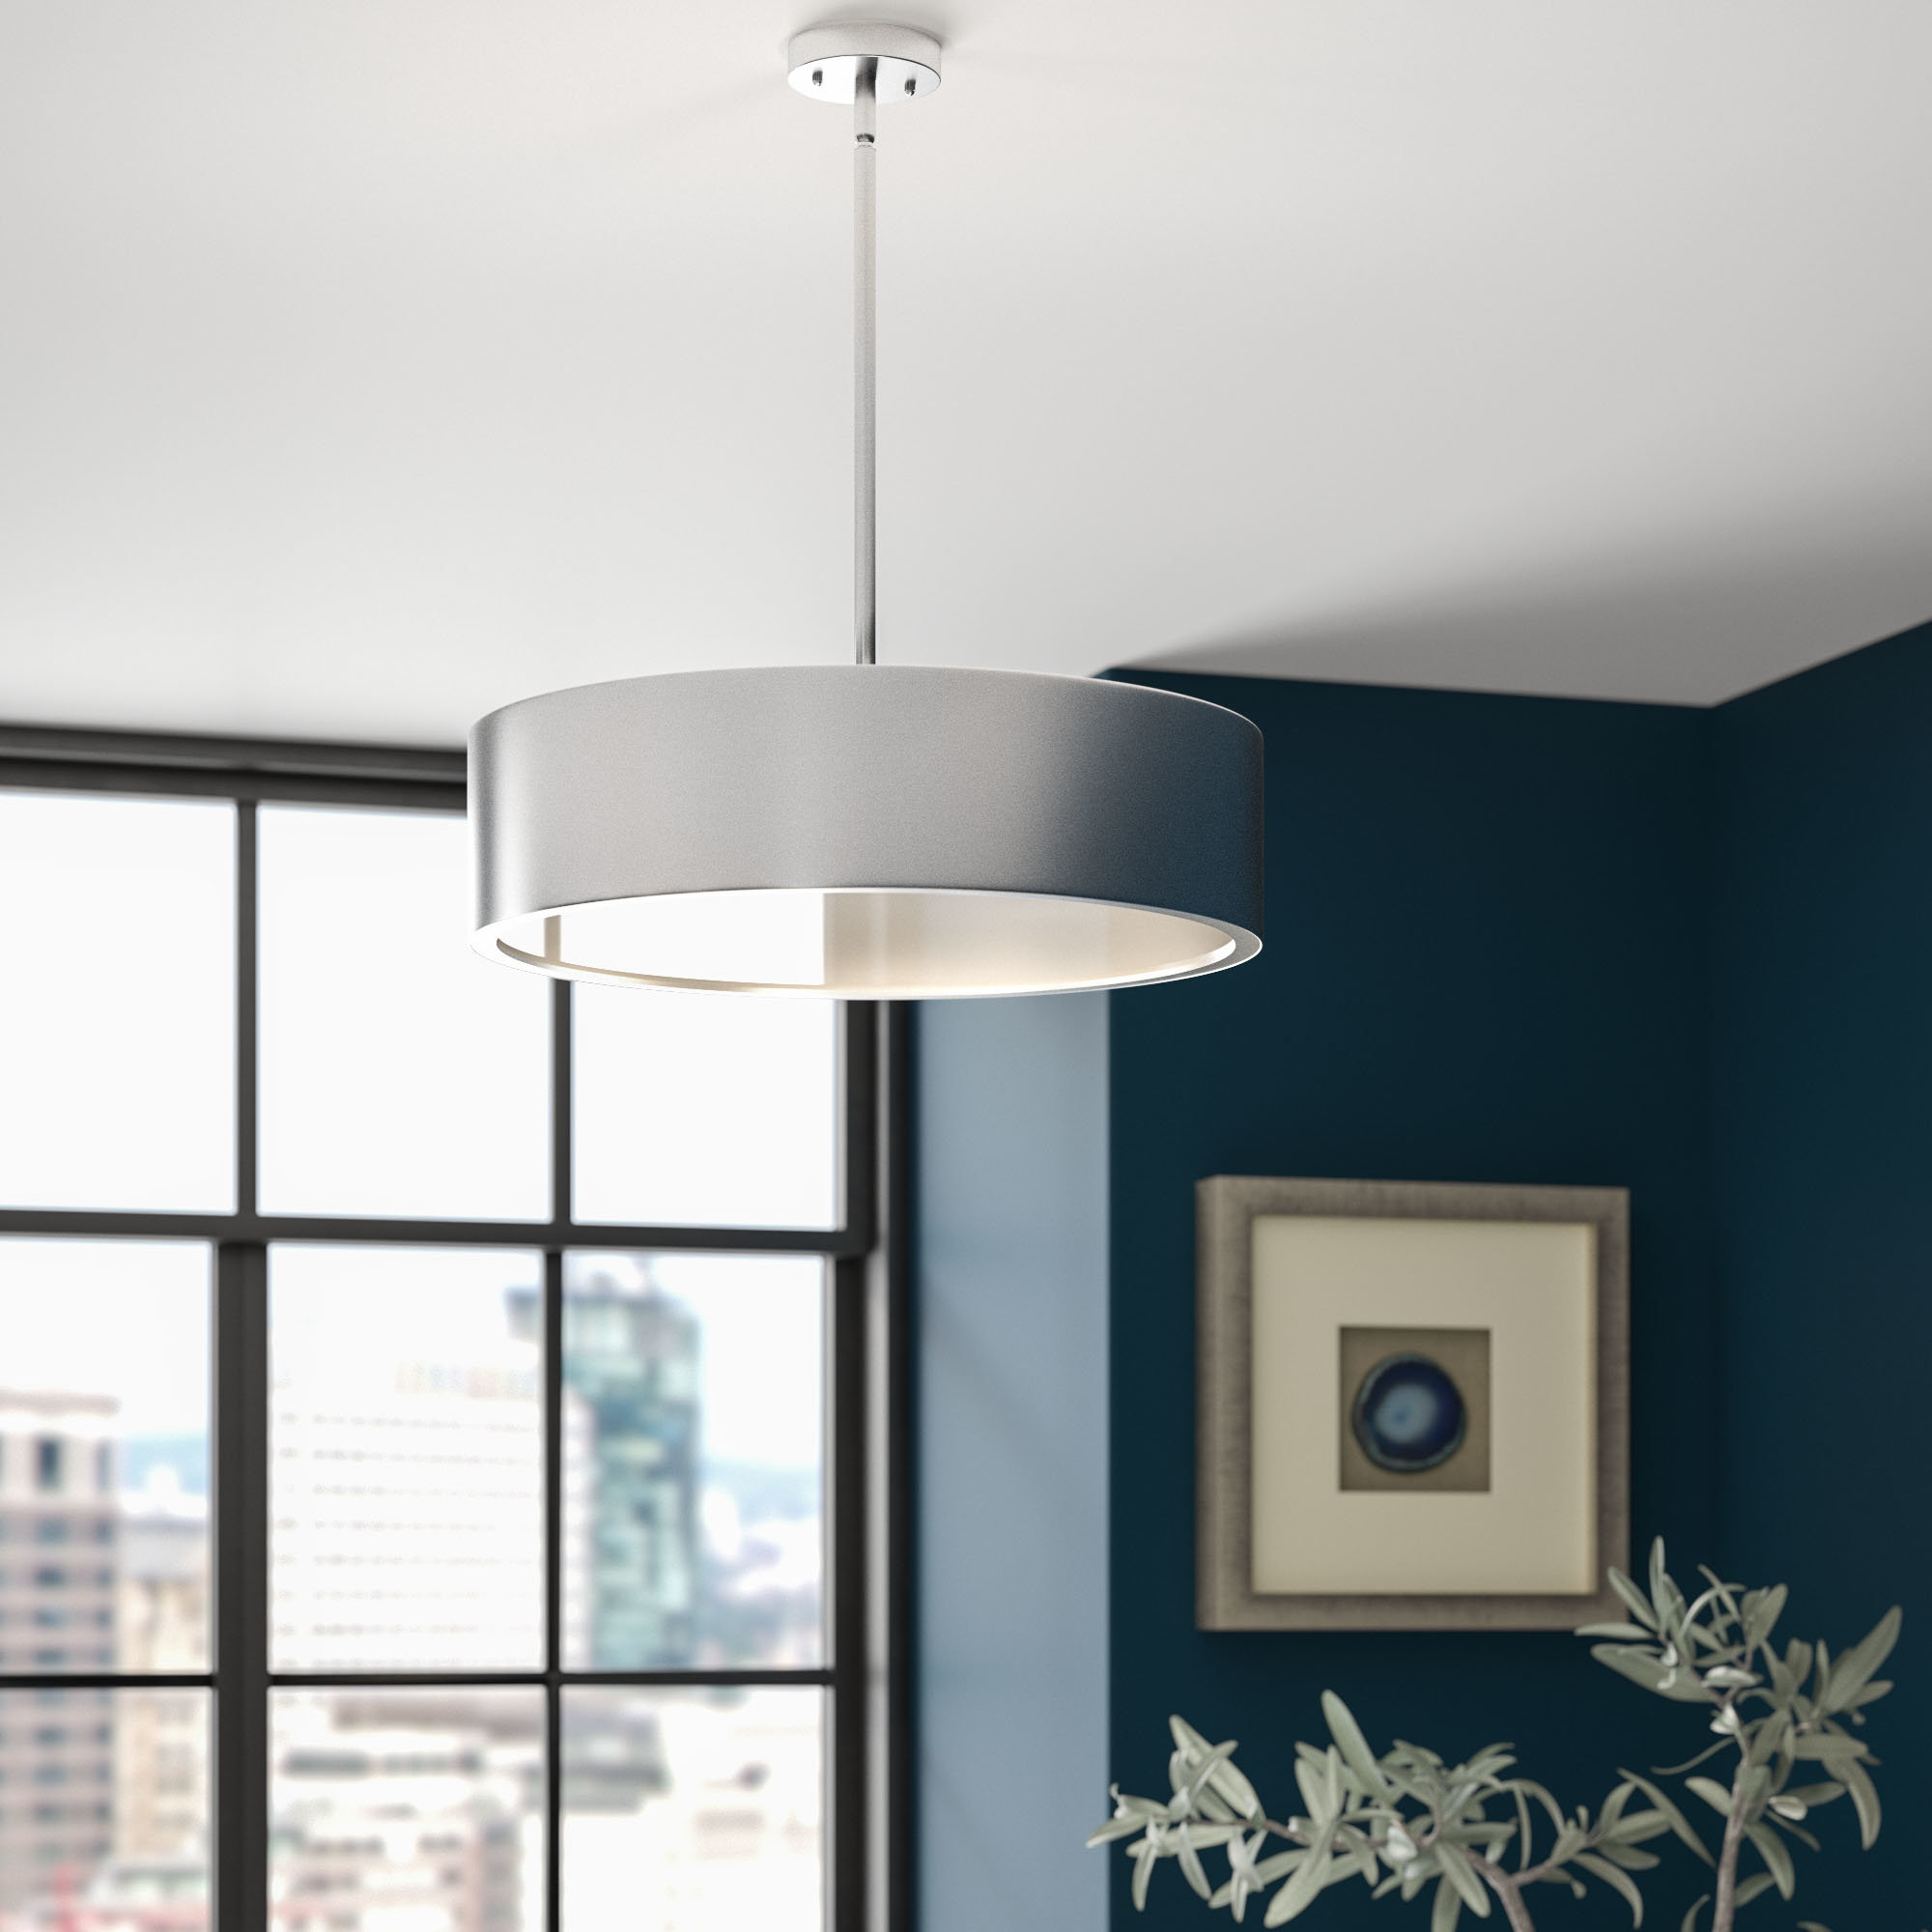 Recent Burslem 3 Light Single Drum Pendants Throughout Orren Ellis Radtke 3 Light Single Drum Pendant & Reviews (View 5 of 20)